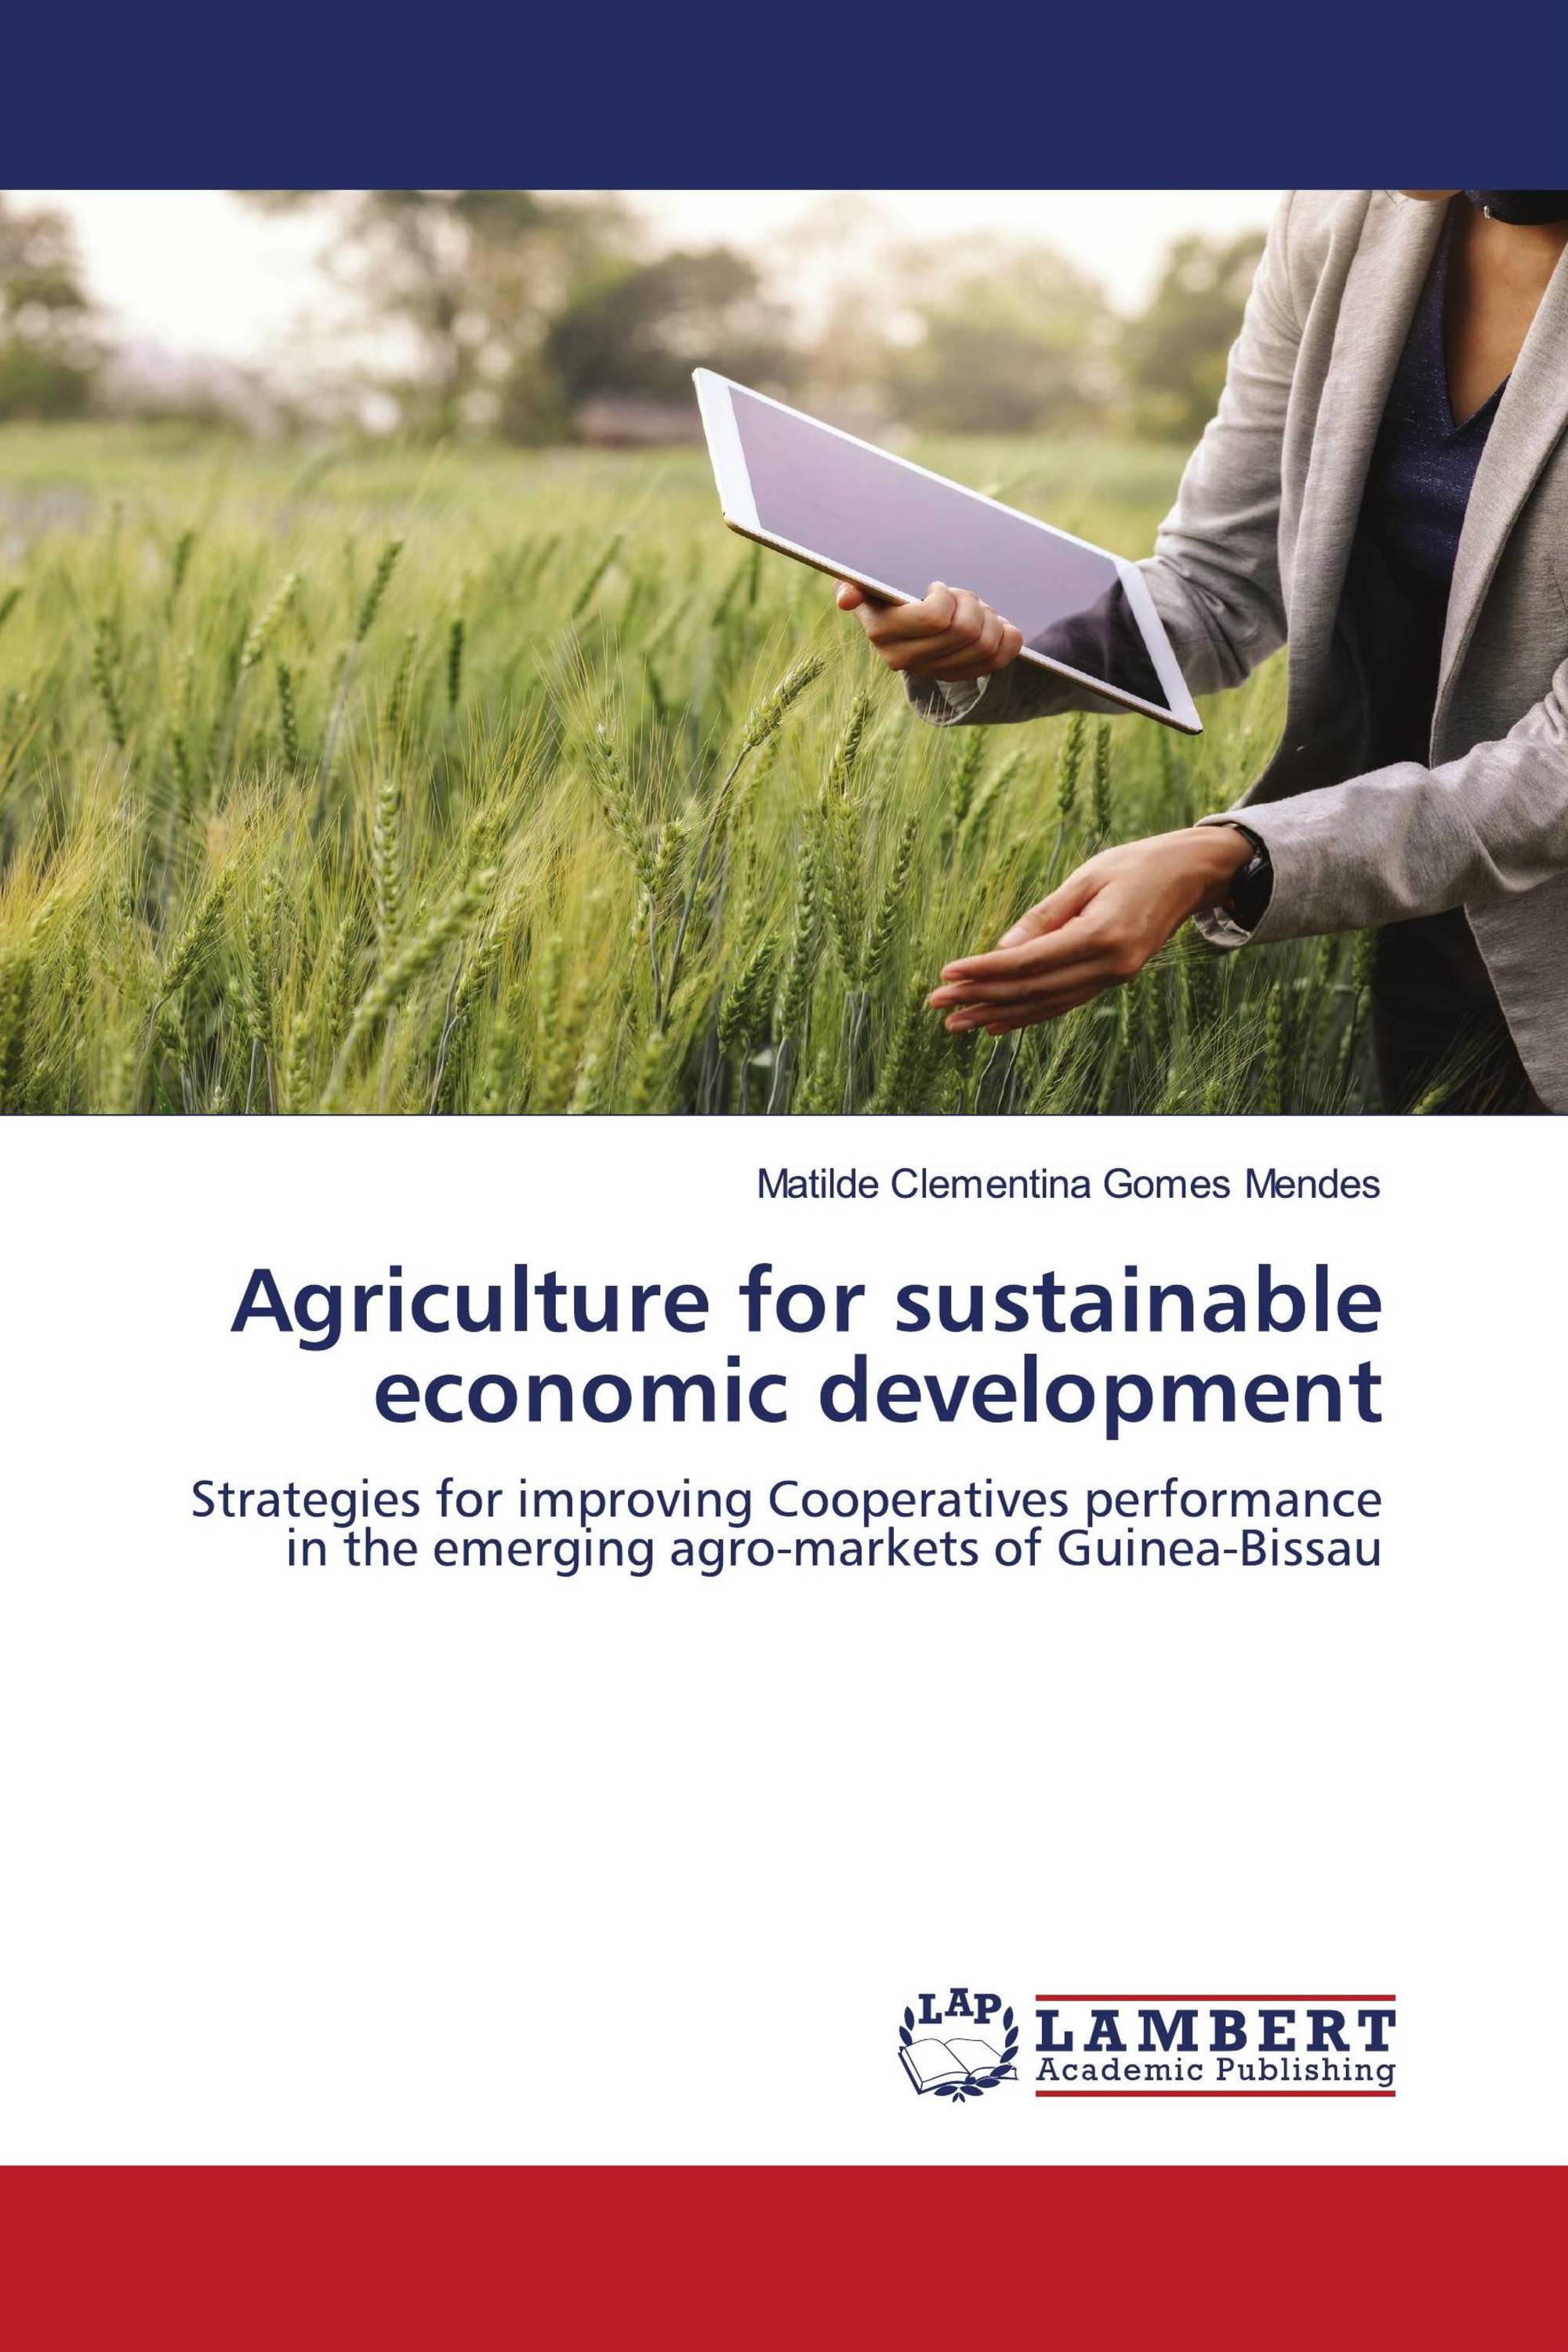 Agriculture for sustainable economic development